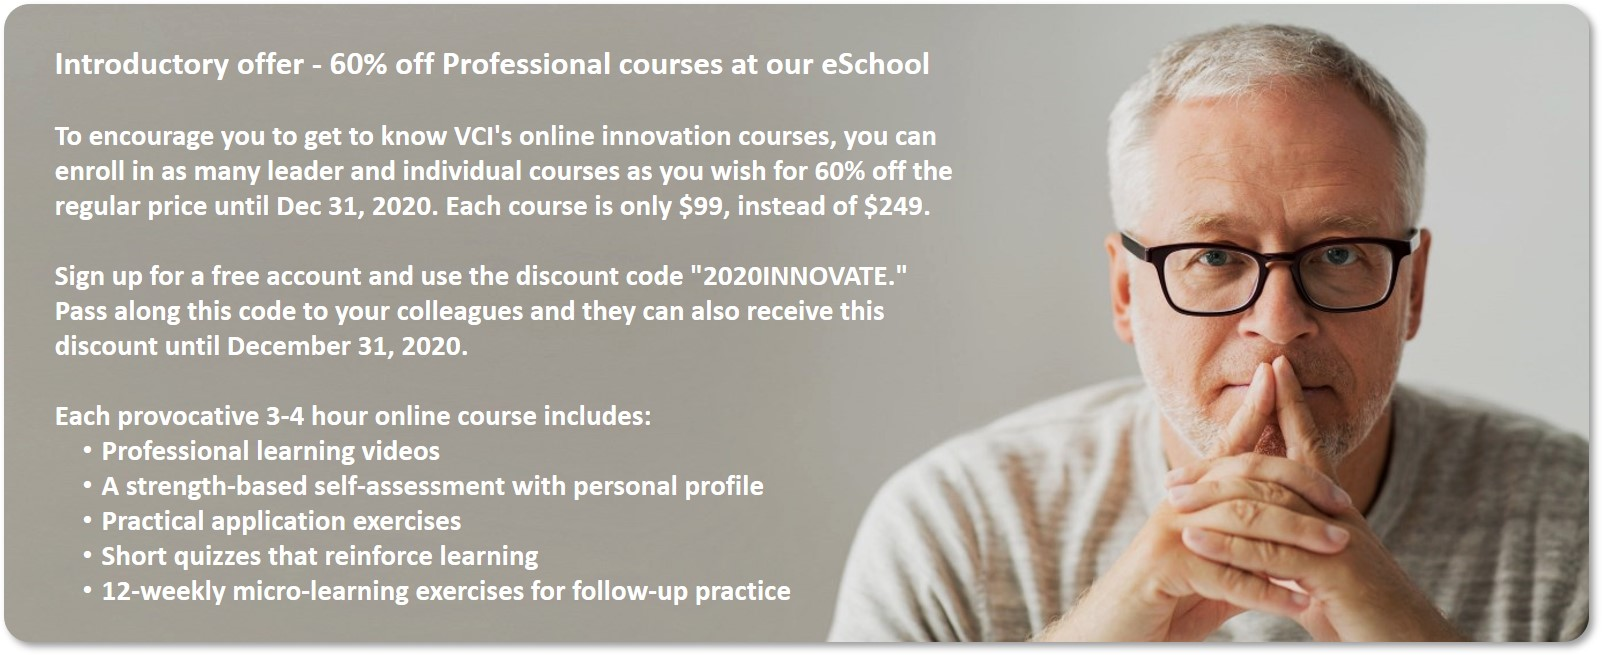 Introductory offer - 60% off Professional online courses